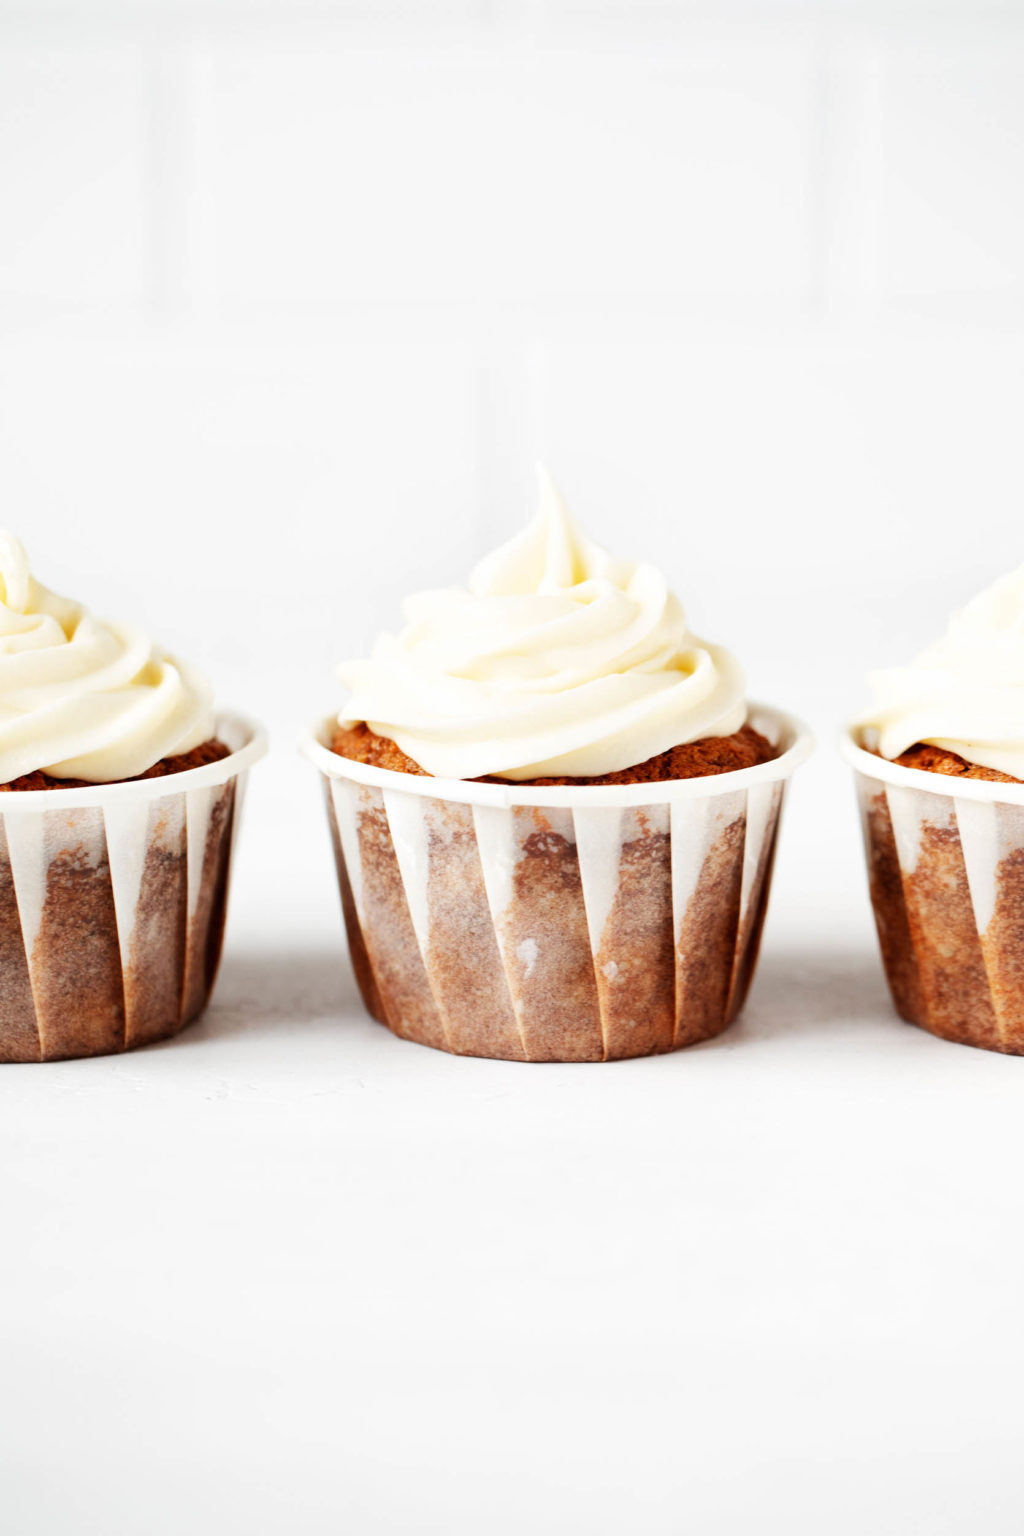 Three vegan cupcakes, made with carrots and cream cheese frosting, are lined up neatly in front of a white brick surface.